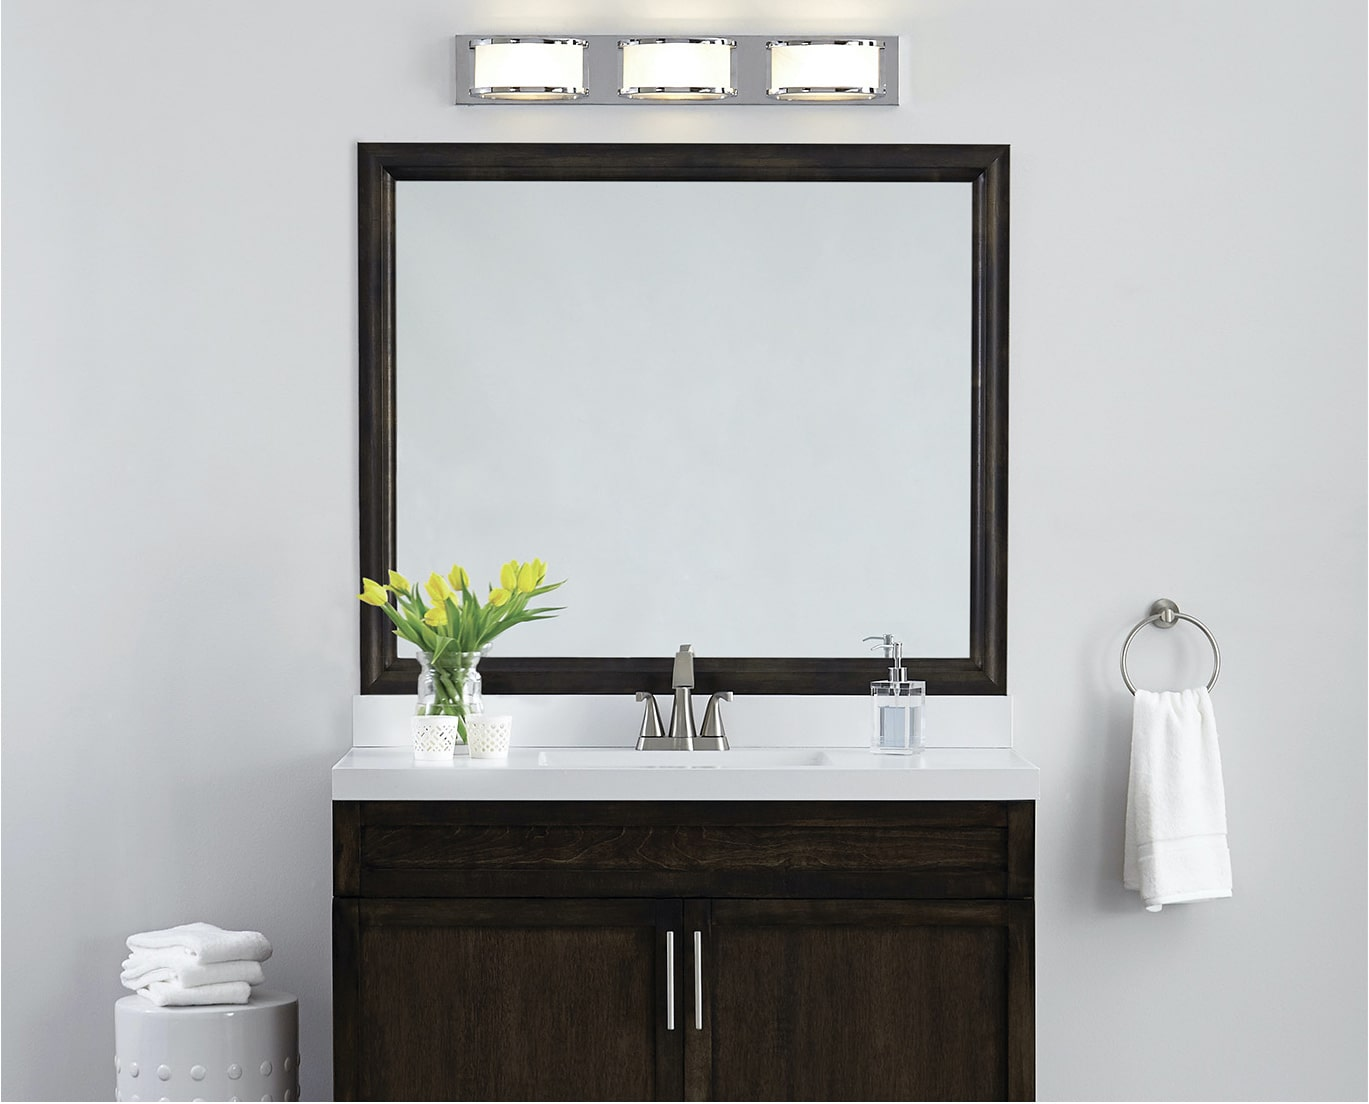 Chelsea Espresso mirror frame situated above the vanity.